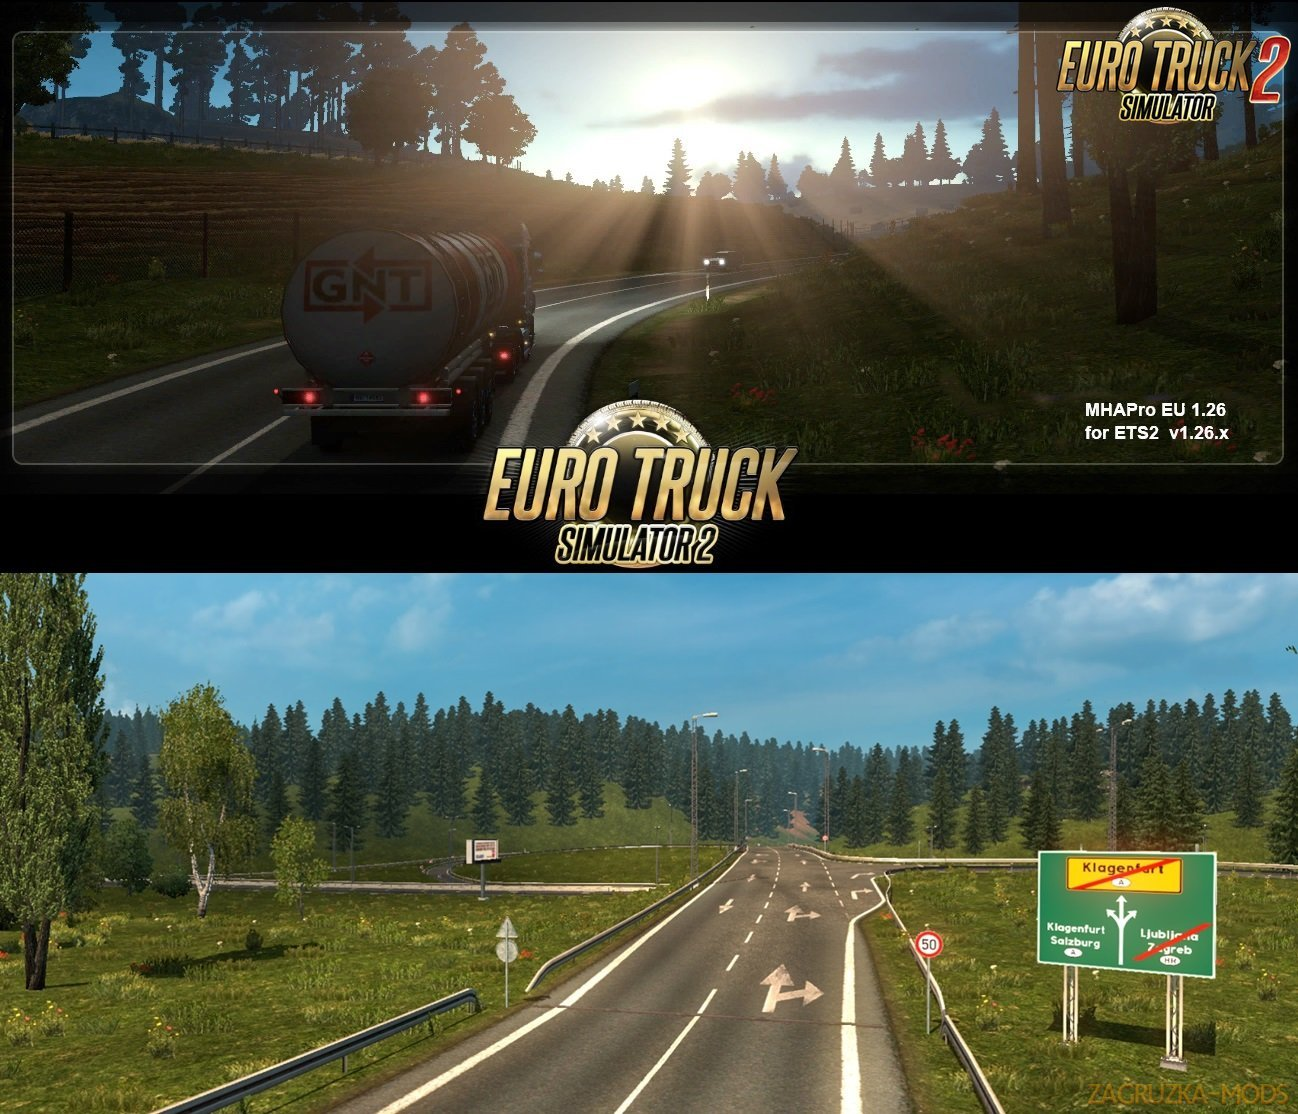 MHAPro Map 1.26 for Ets2 [1.26.x]